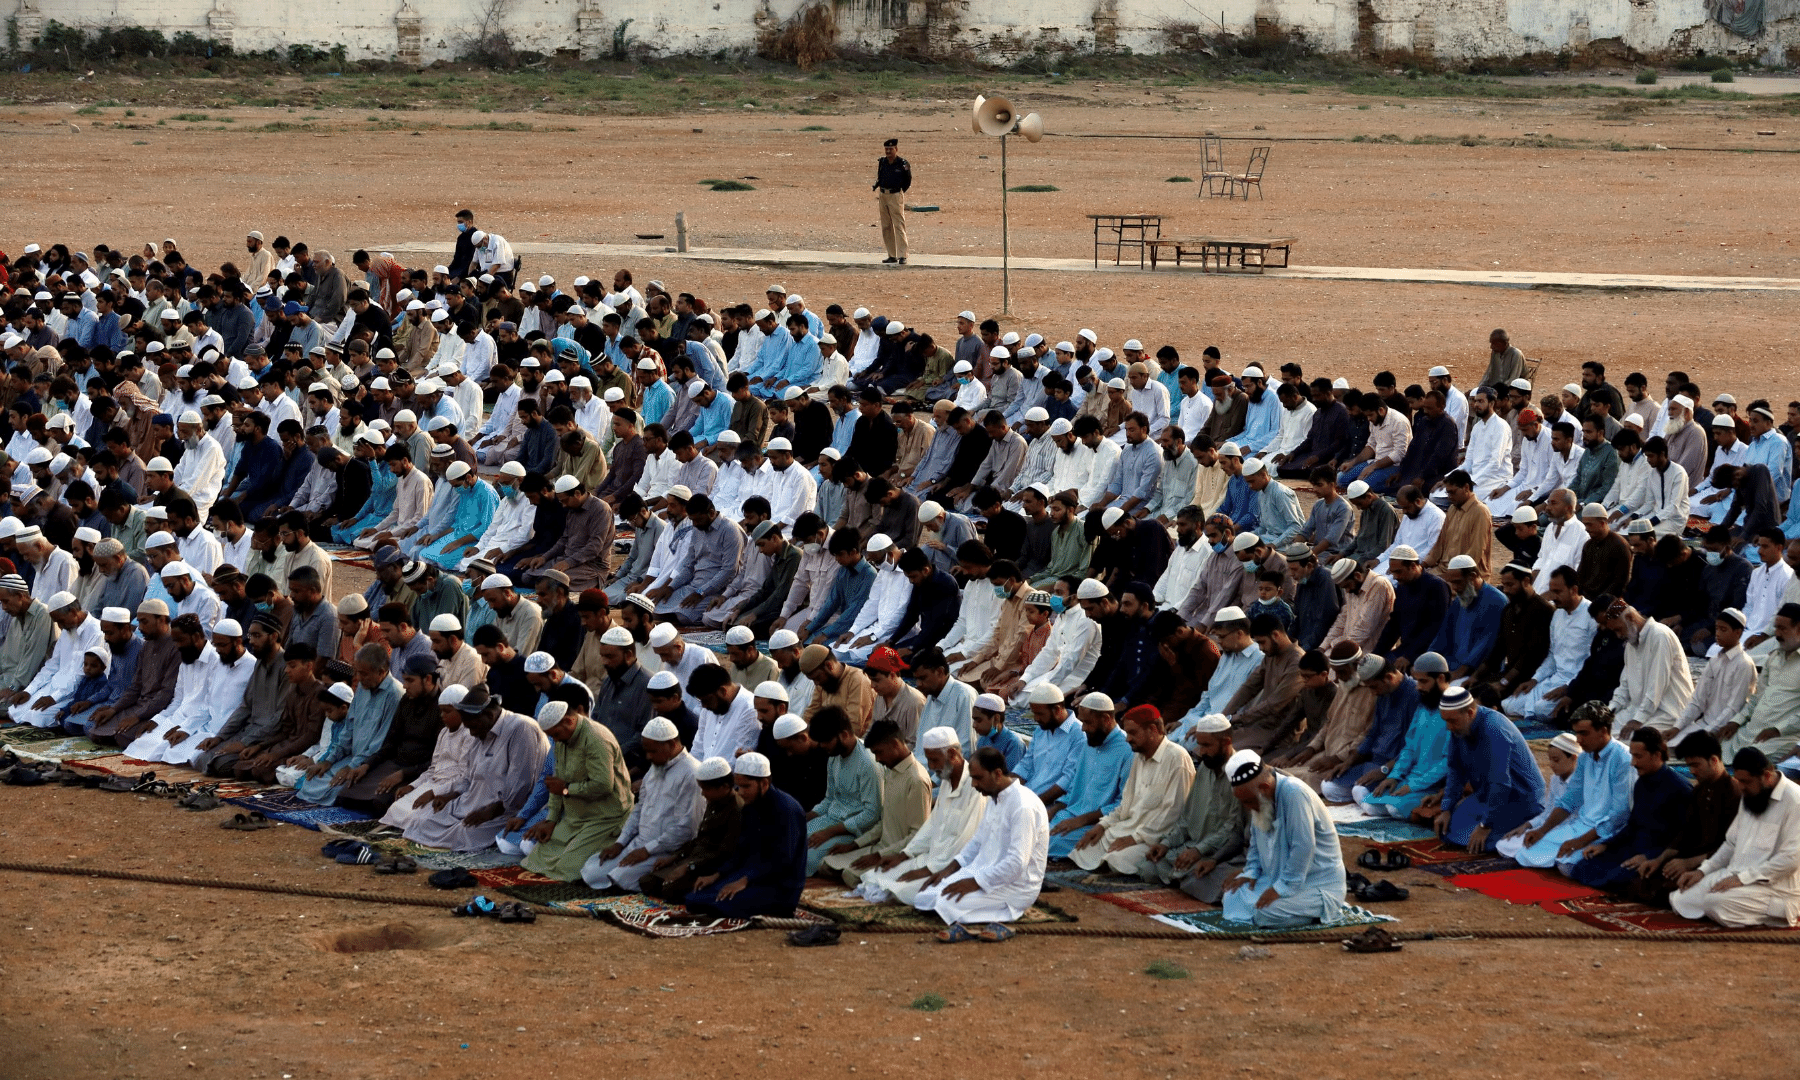 A police officer stands guard as Muslims attend Eidul Azha prayers at a playground in Karachi. — Reuters